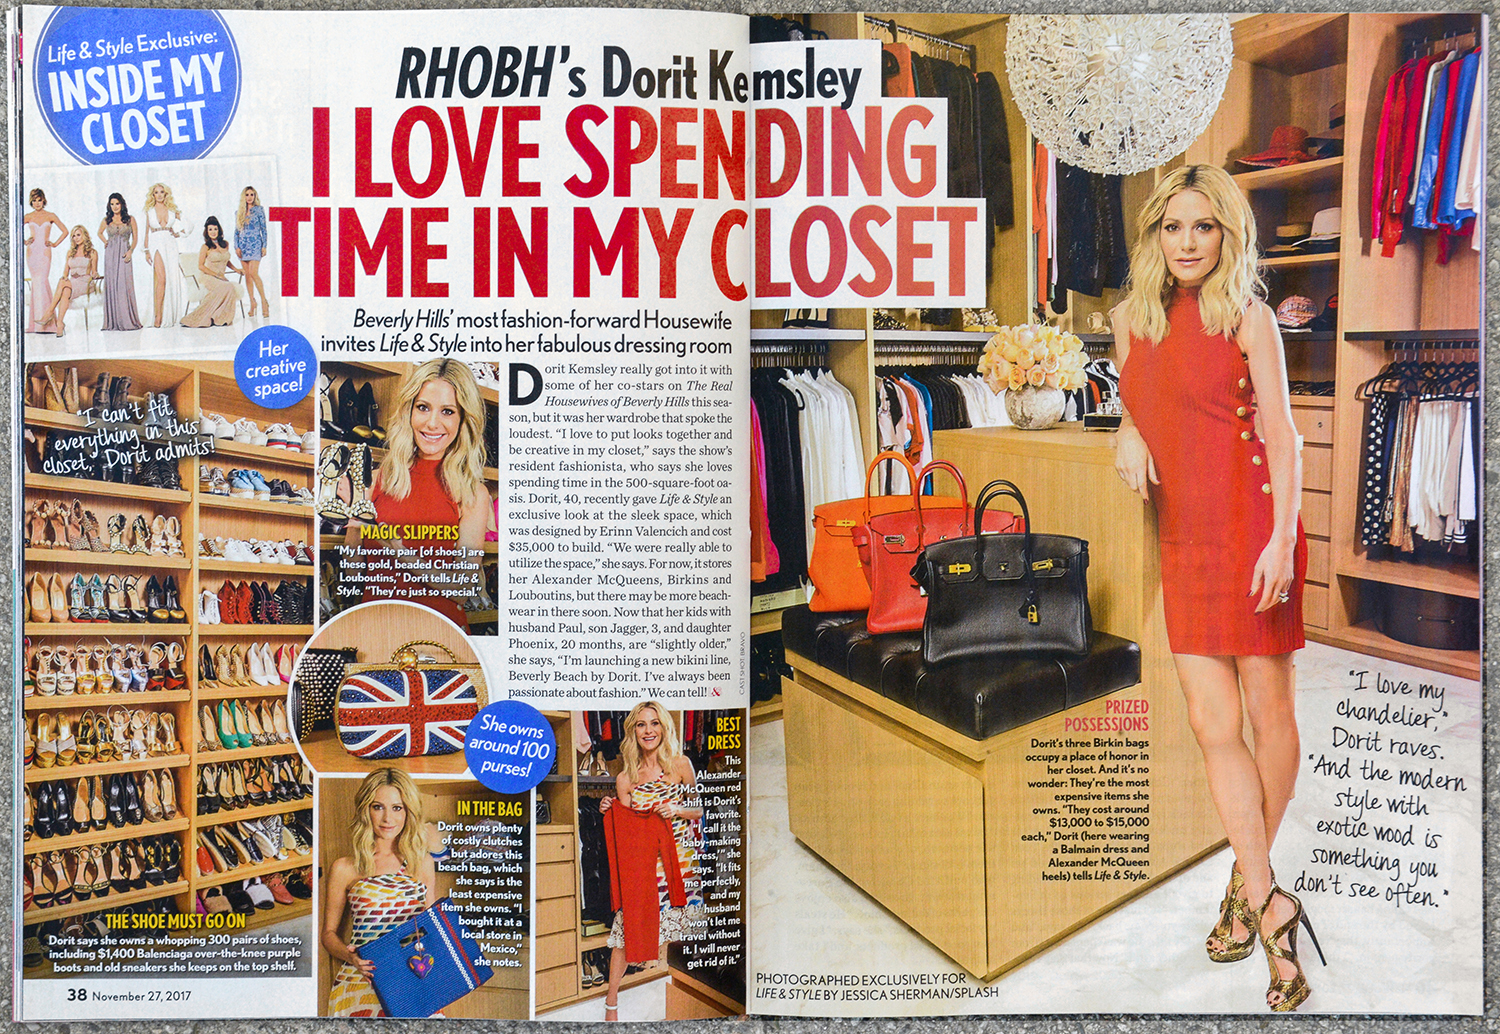 Dorit-Closet-Life-and-Style-Jessica-Sherman-Web.jpg